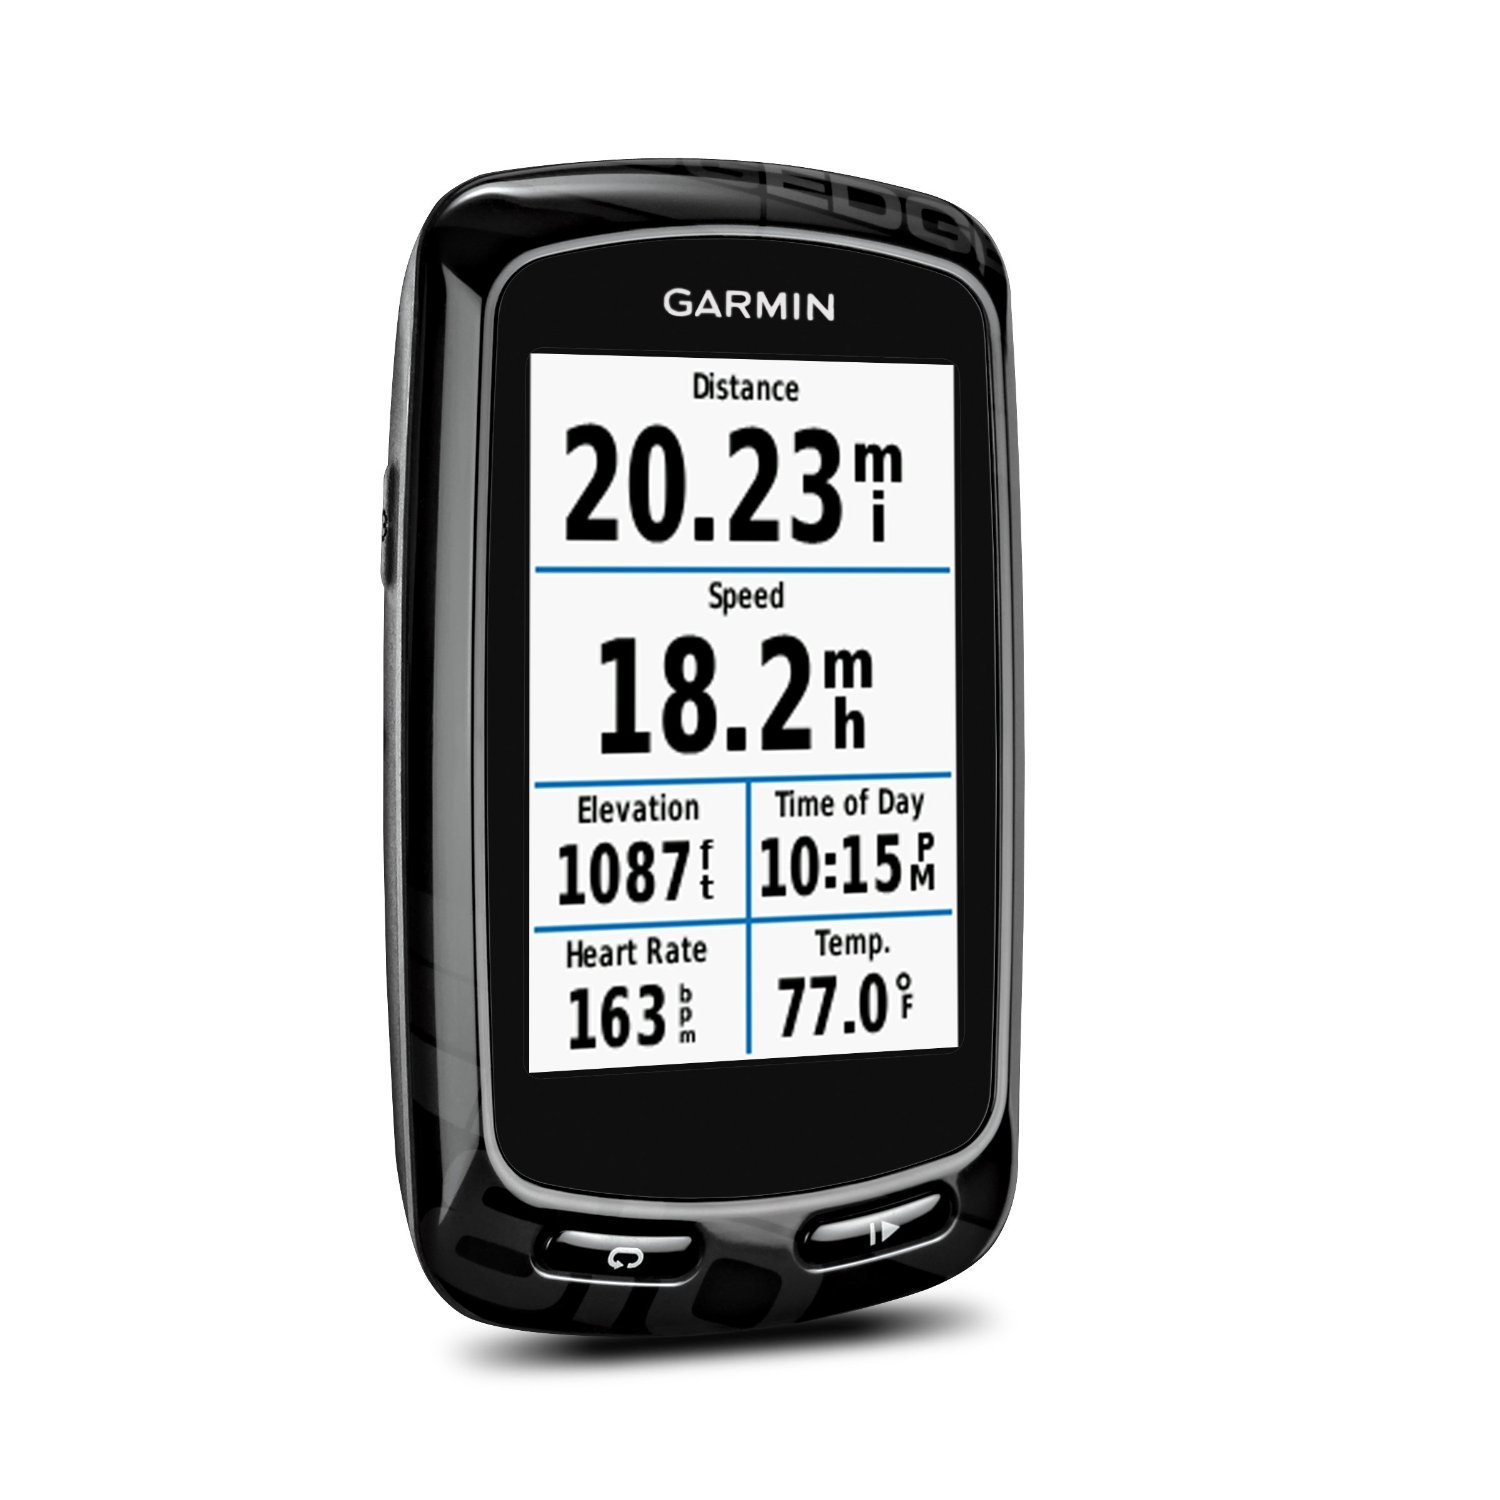 Garmin Edge Computer Certified Refurbished Image 1